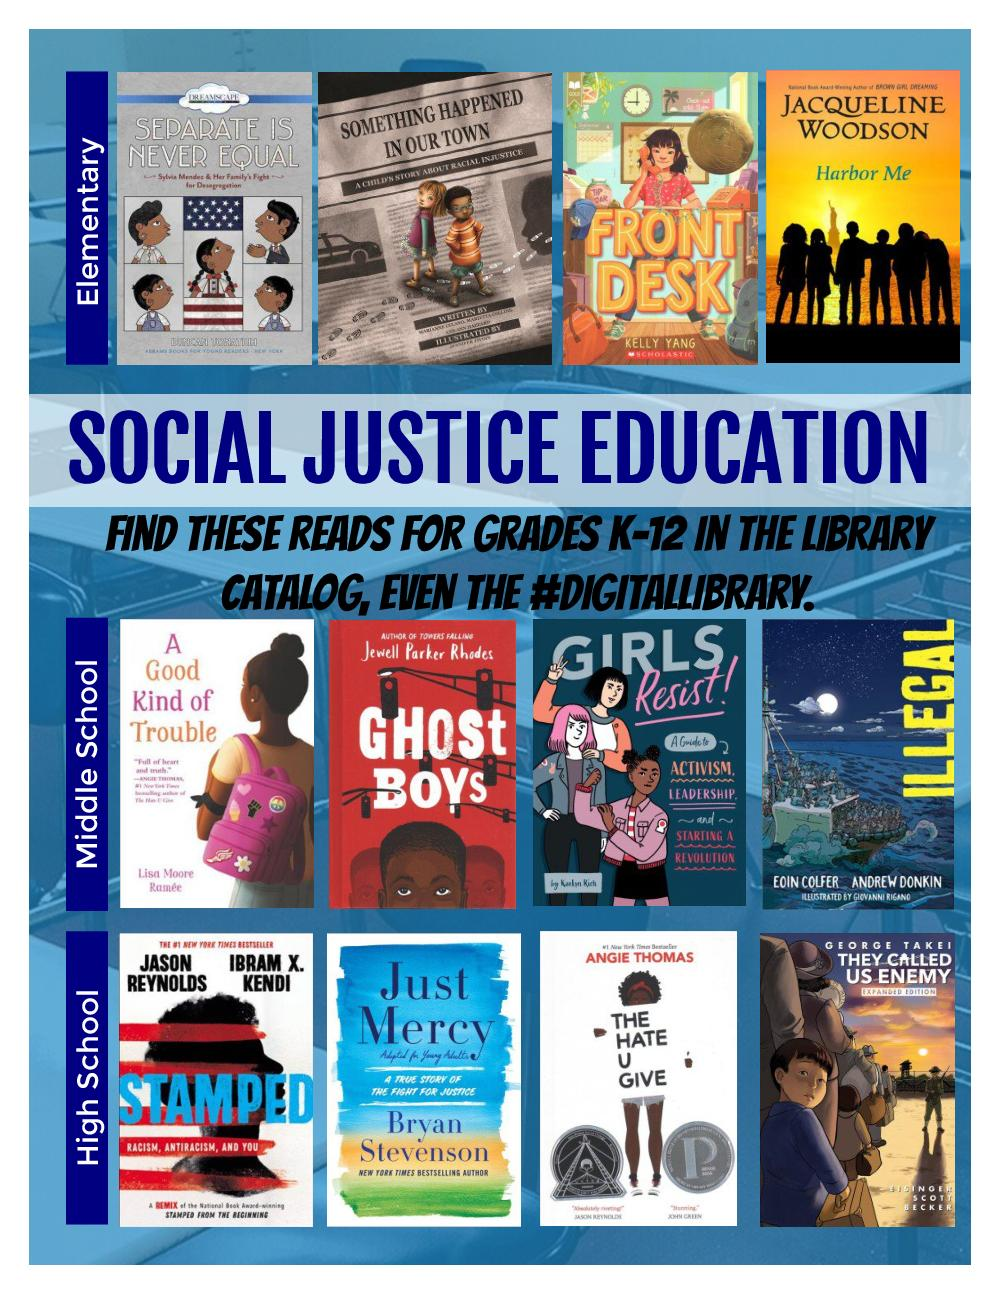 social justice reads